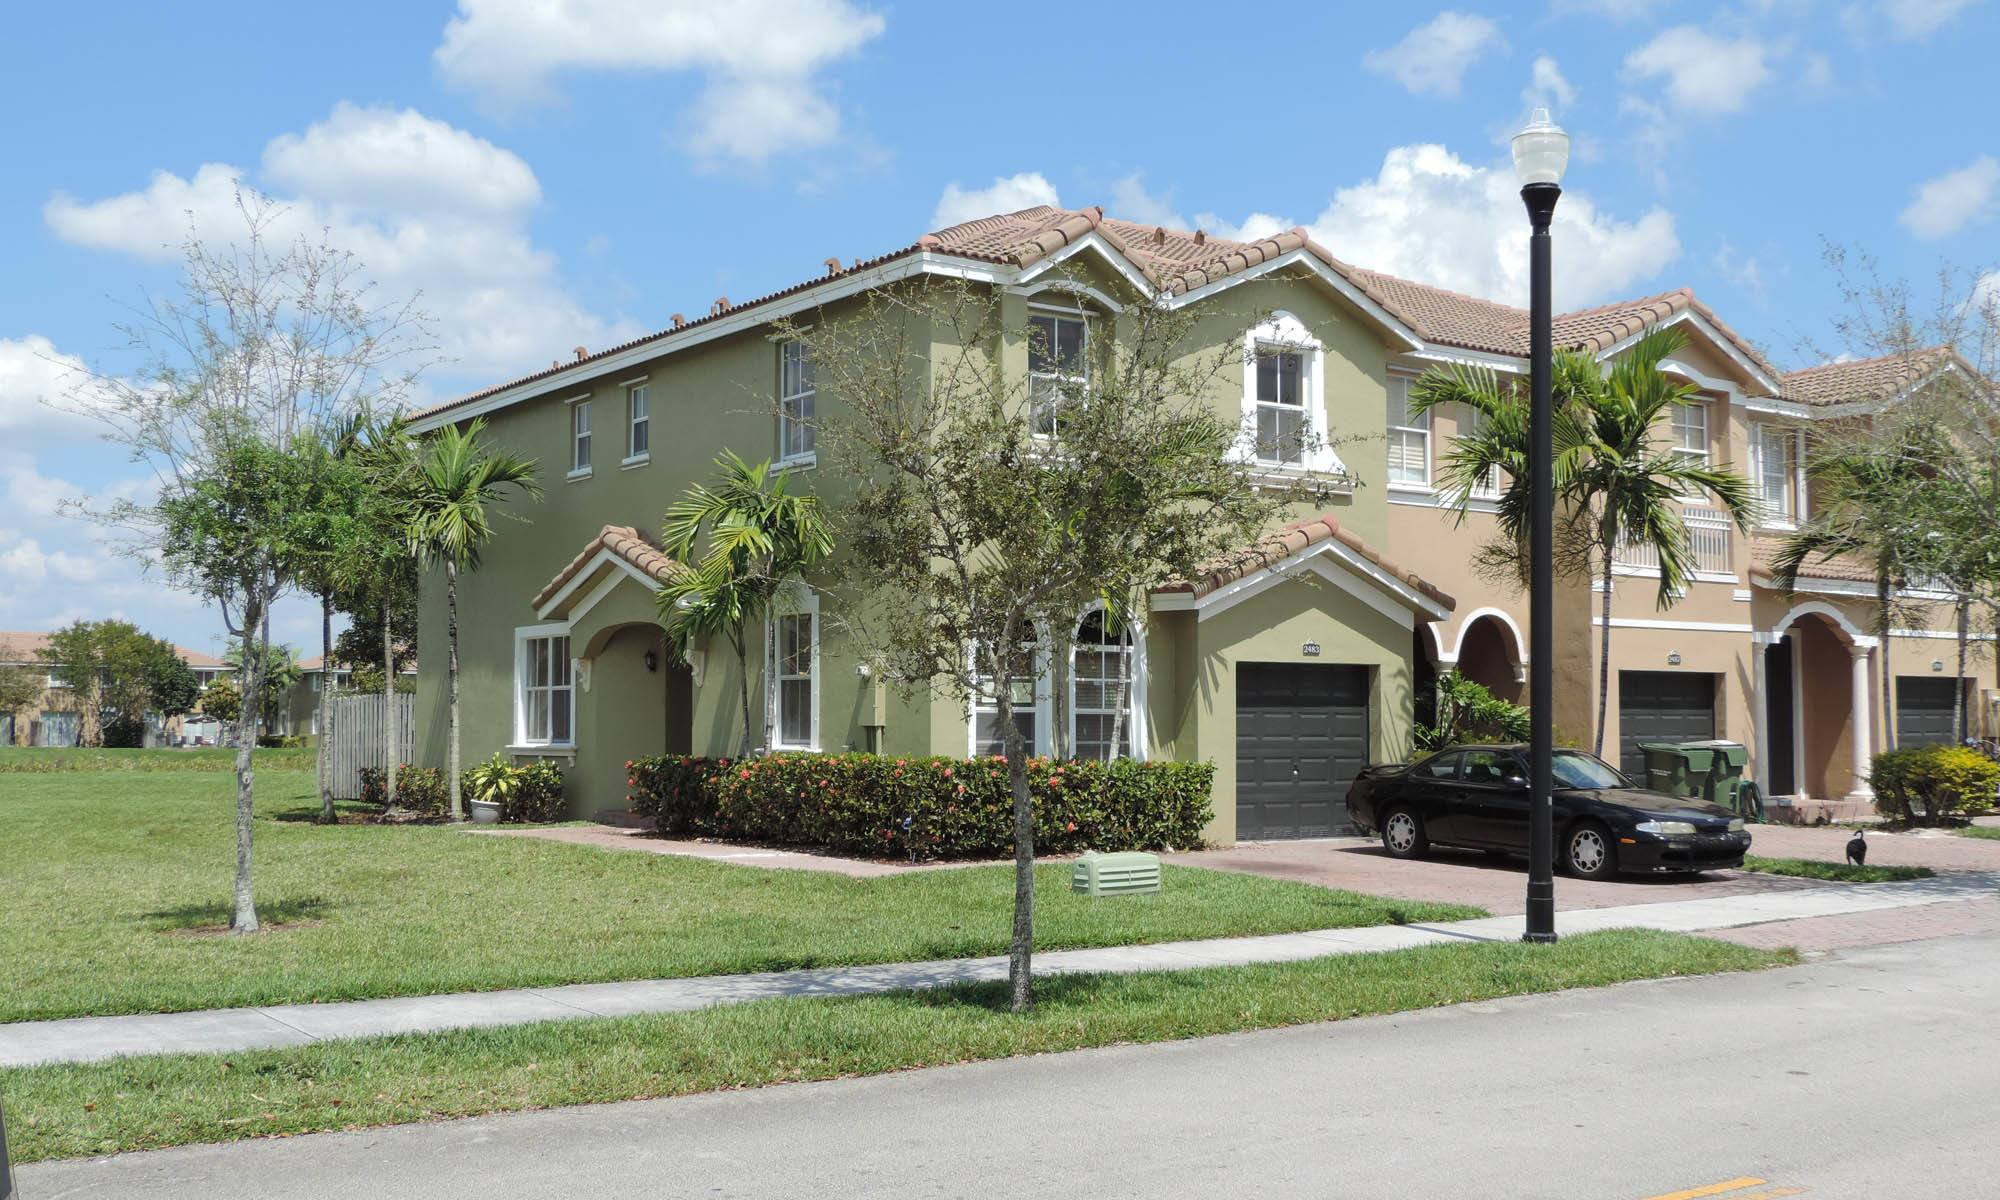 Townhomes in Homestead, FL